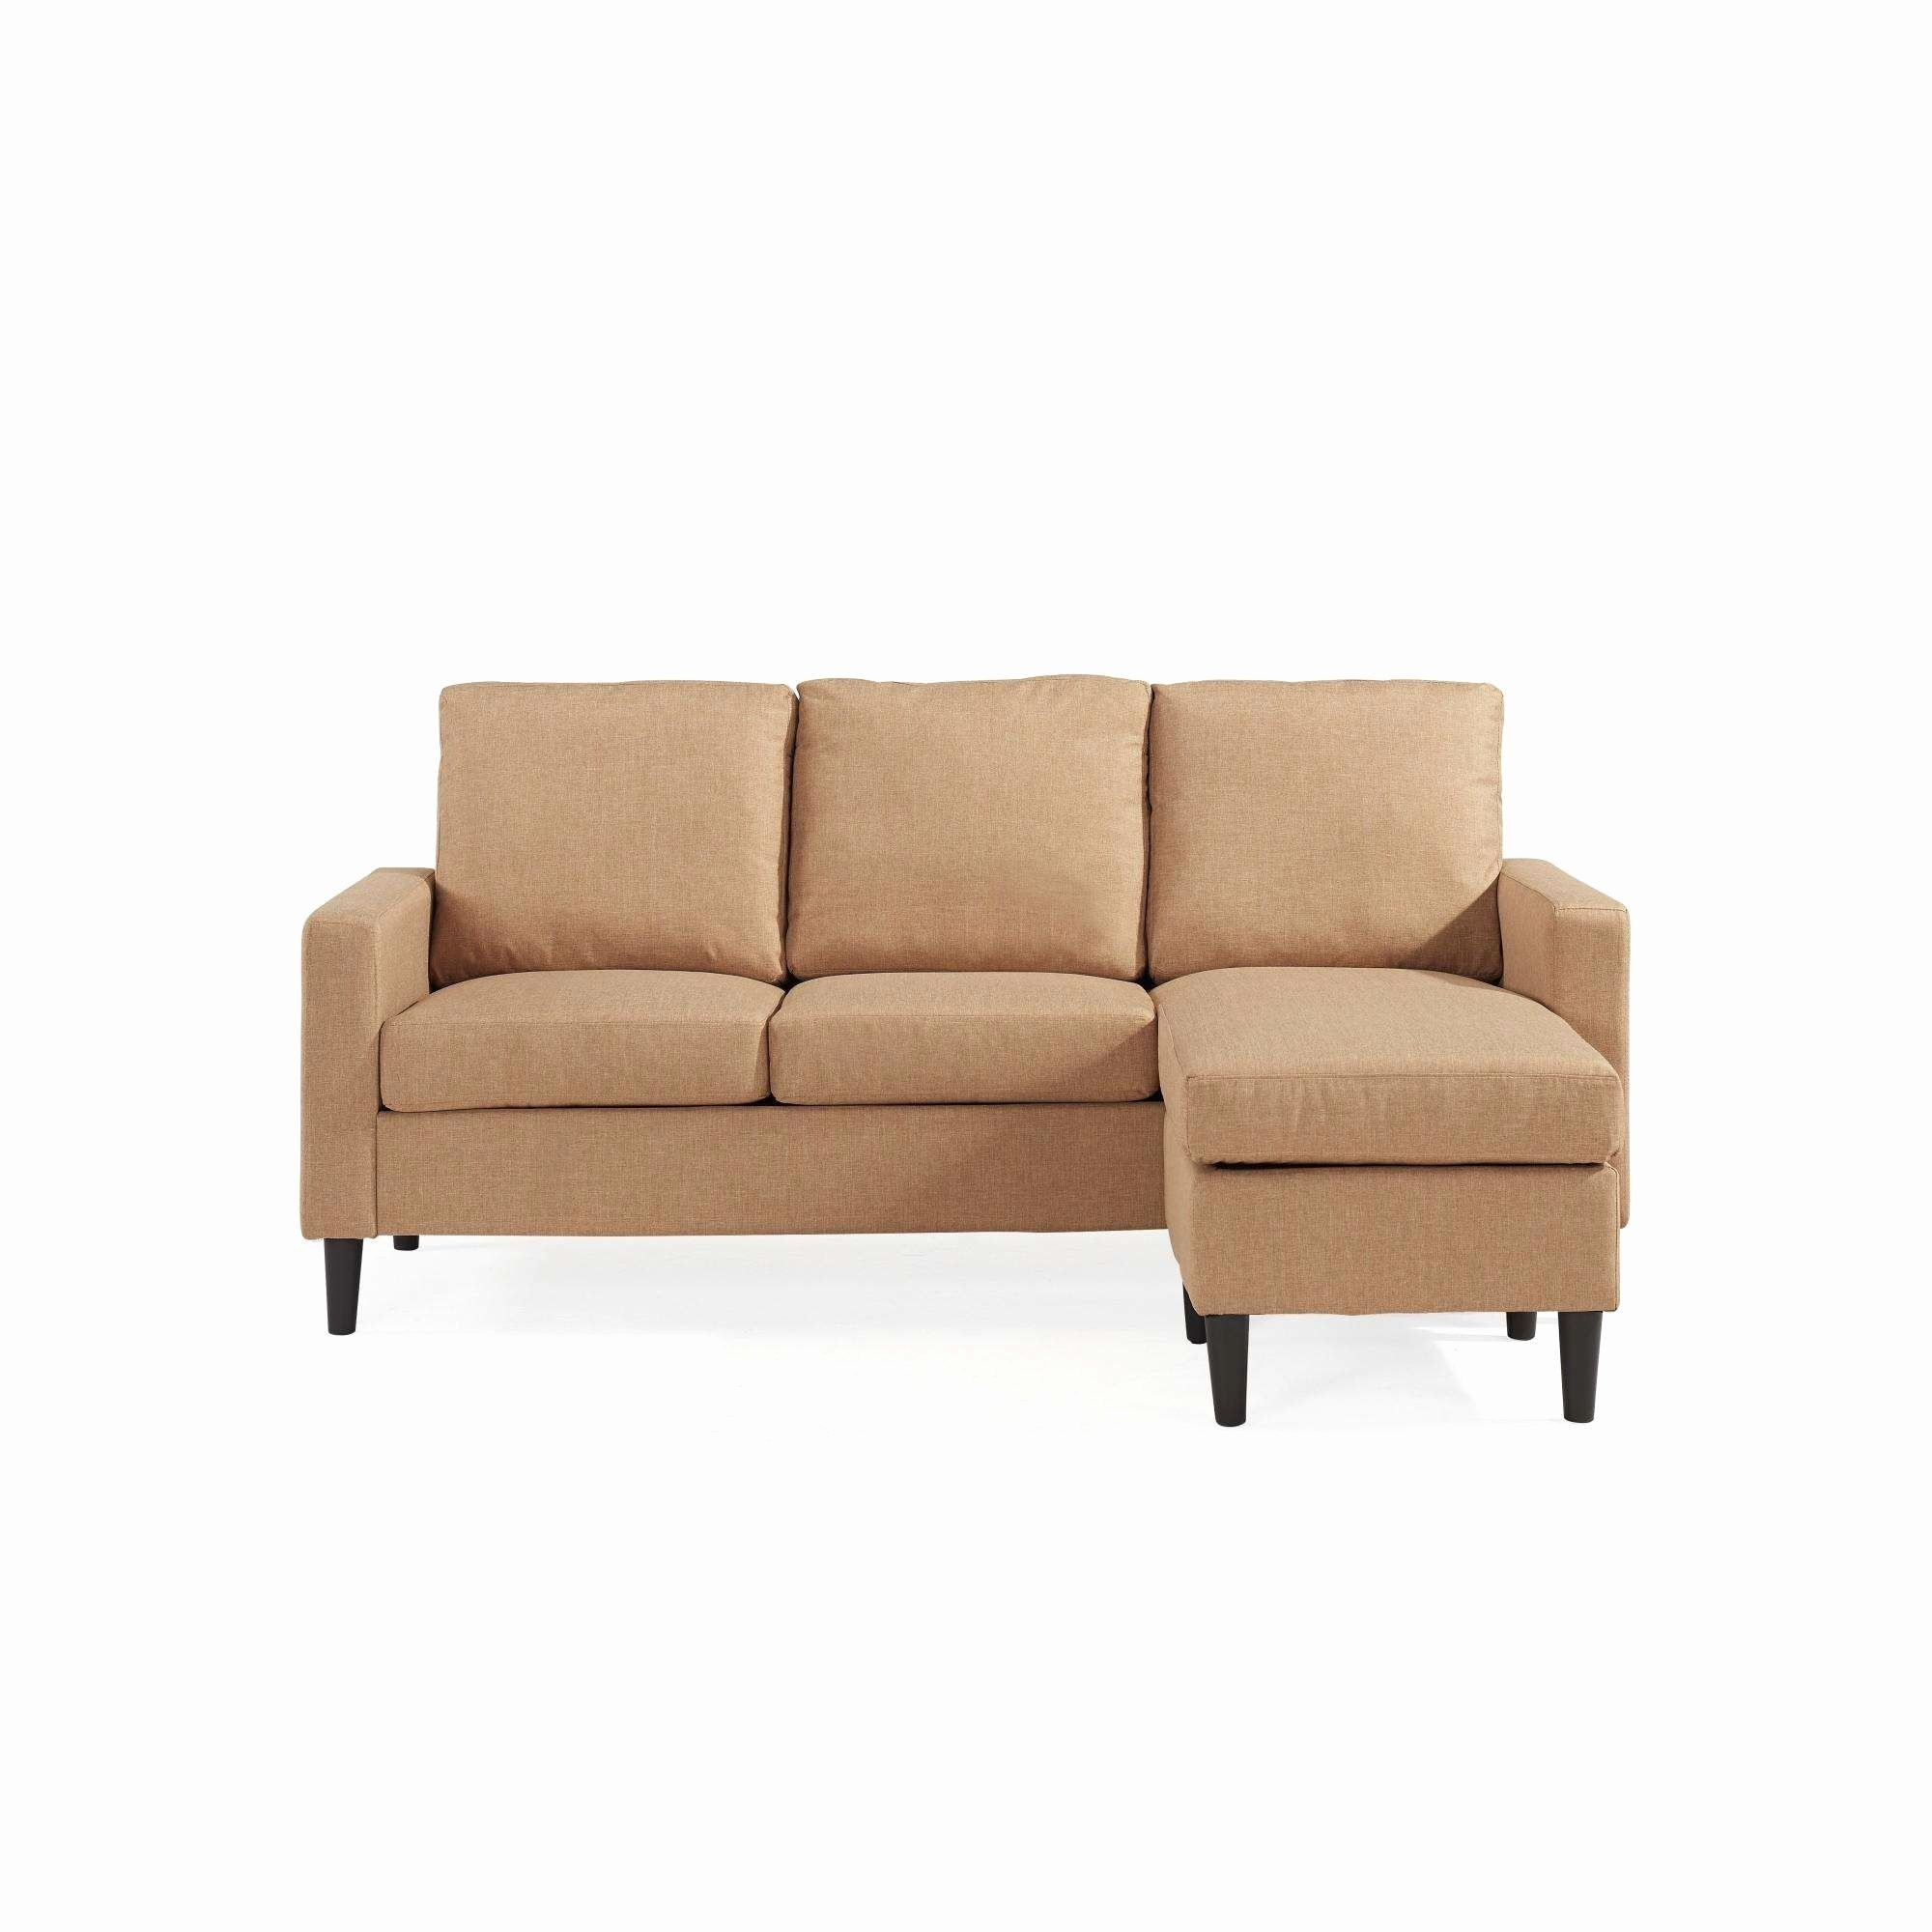 Regular 25 Apartment Sectional With Chaise Original Intended For Aquarius Light Grey 2 Piece Sectionals With Laf Chaise (View 14 of 30)